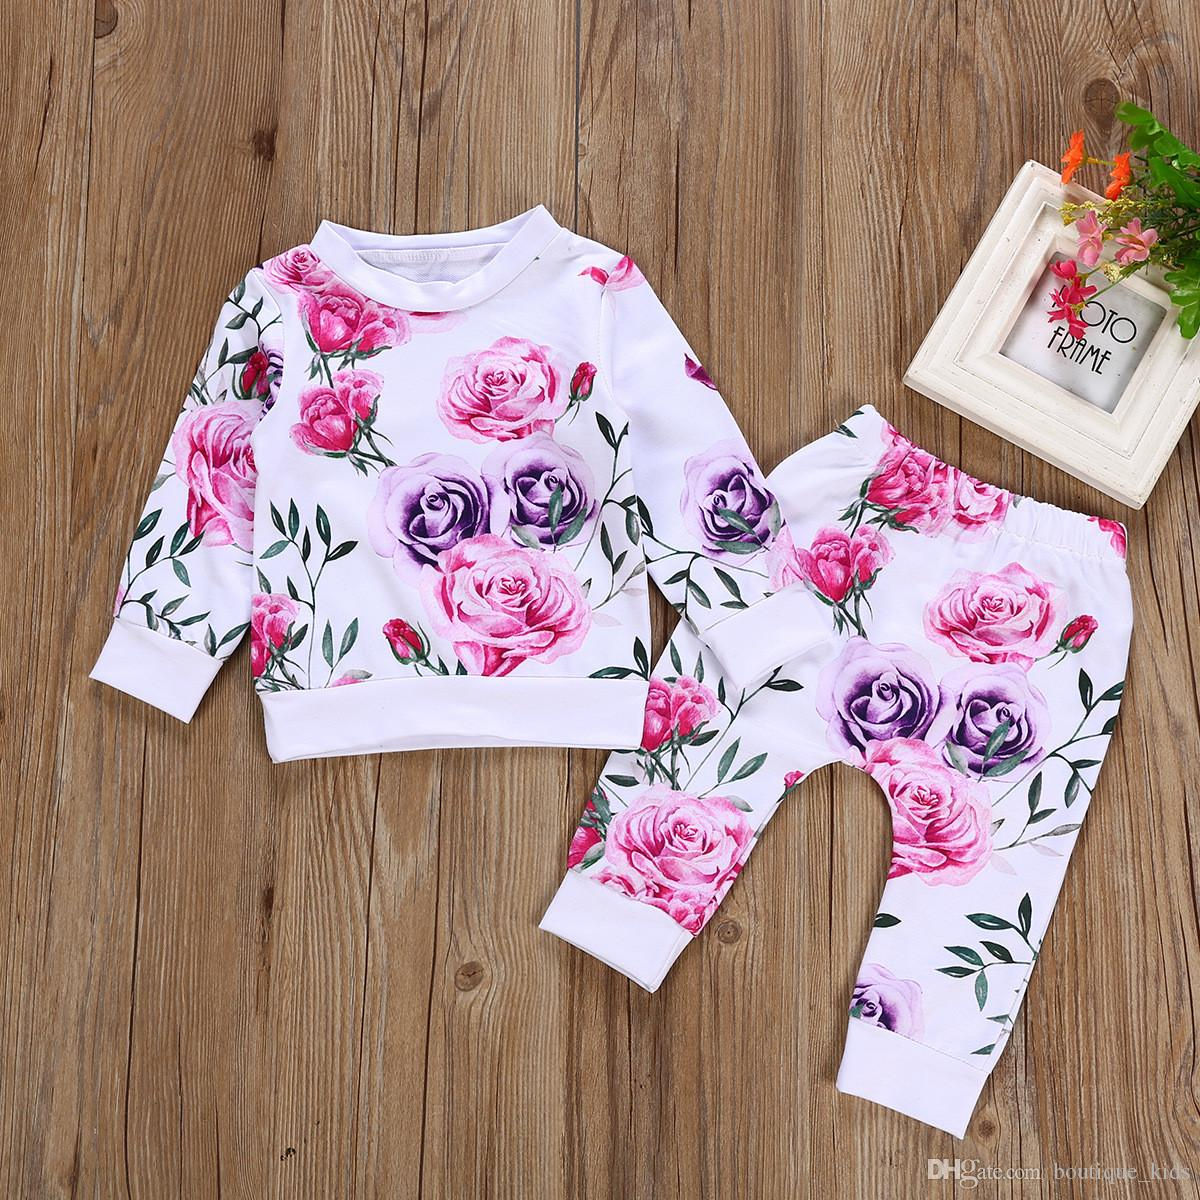 4ed74b39170 2019 Kids Clothes Cute Newborn Baby Girl Clothes Set Floral T Shirt Tops  +Pants Girls Outfits Infant Toddler Girls Clothing Sets Boutique From  Boutique kids ...